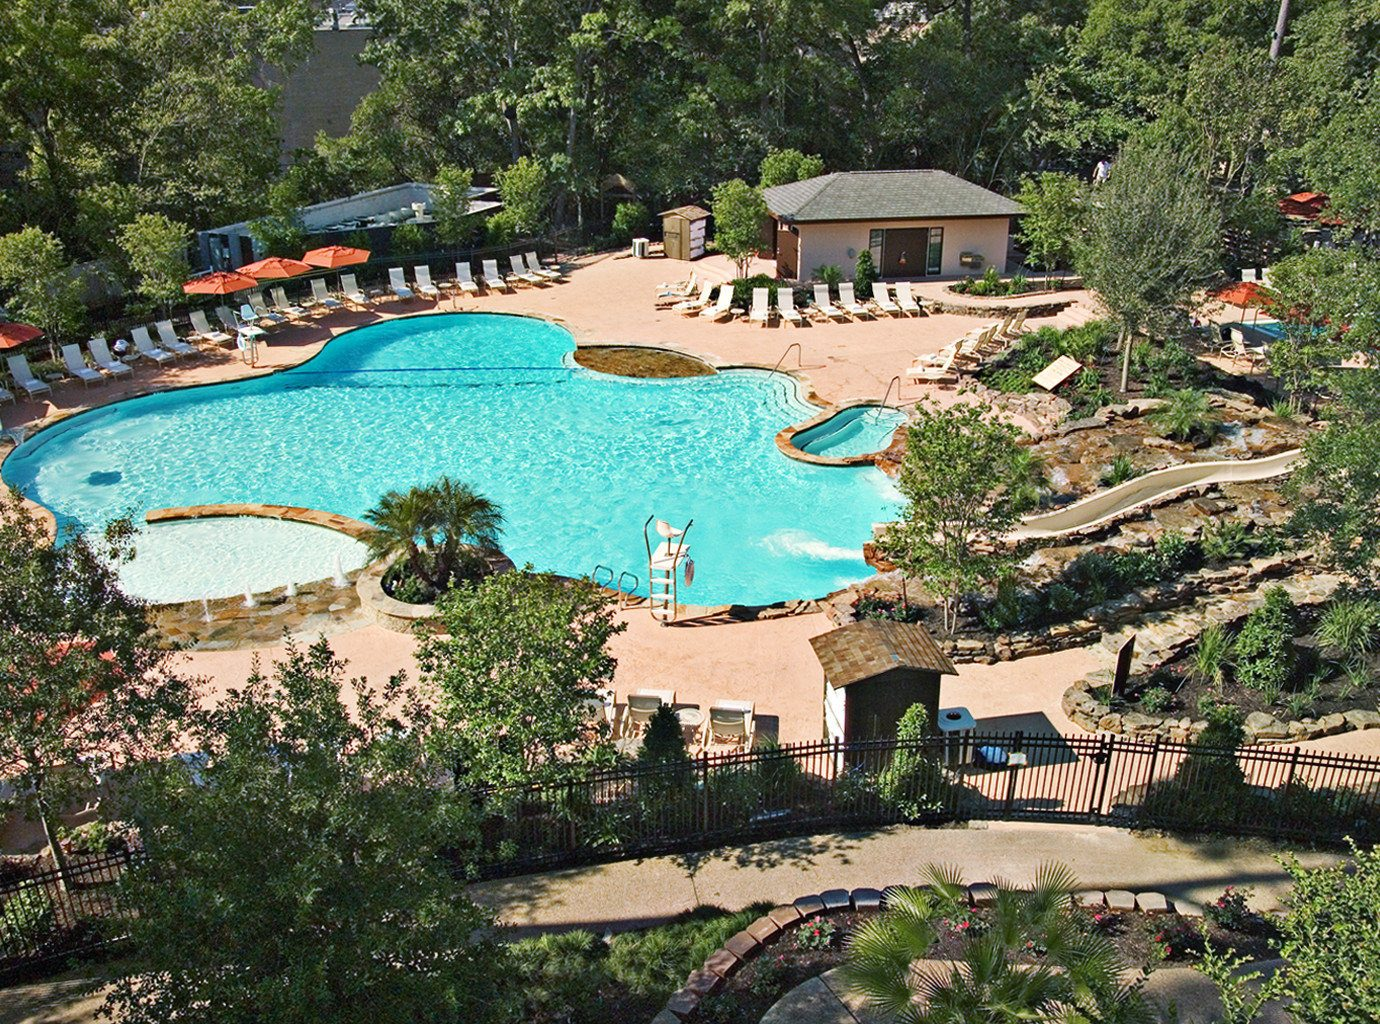 Elegant Grounds Jetsetter Guides Patio Pool Rustic Terrace tree outdoor leisure Resort swimming pool estate vacation lawn amusement park park Water park Garden lined